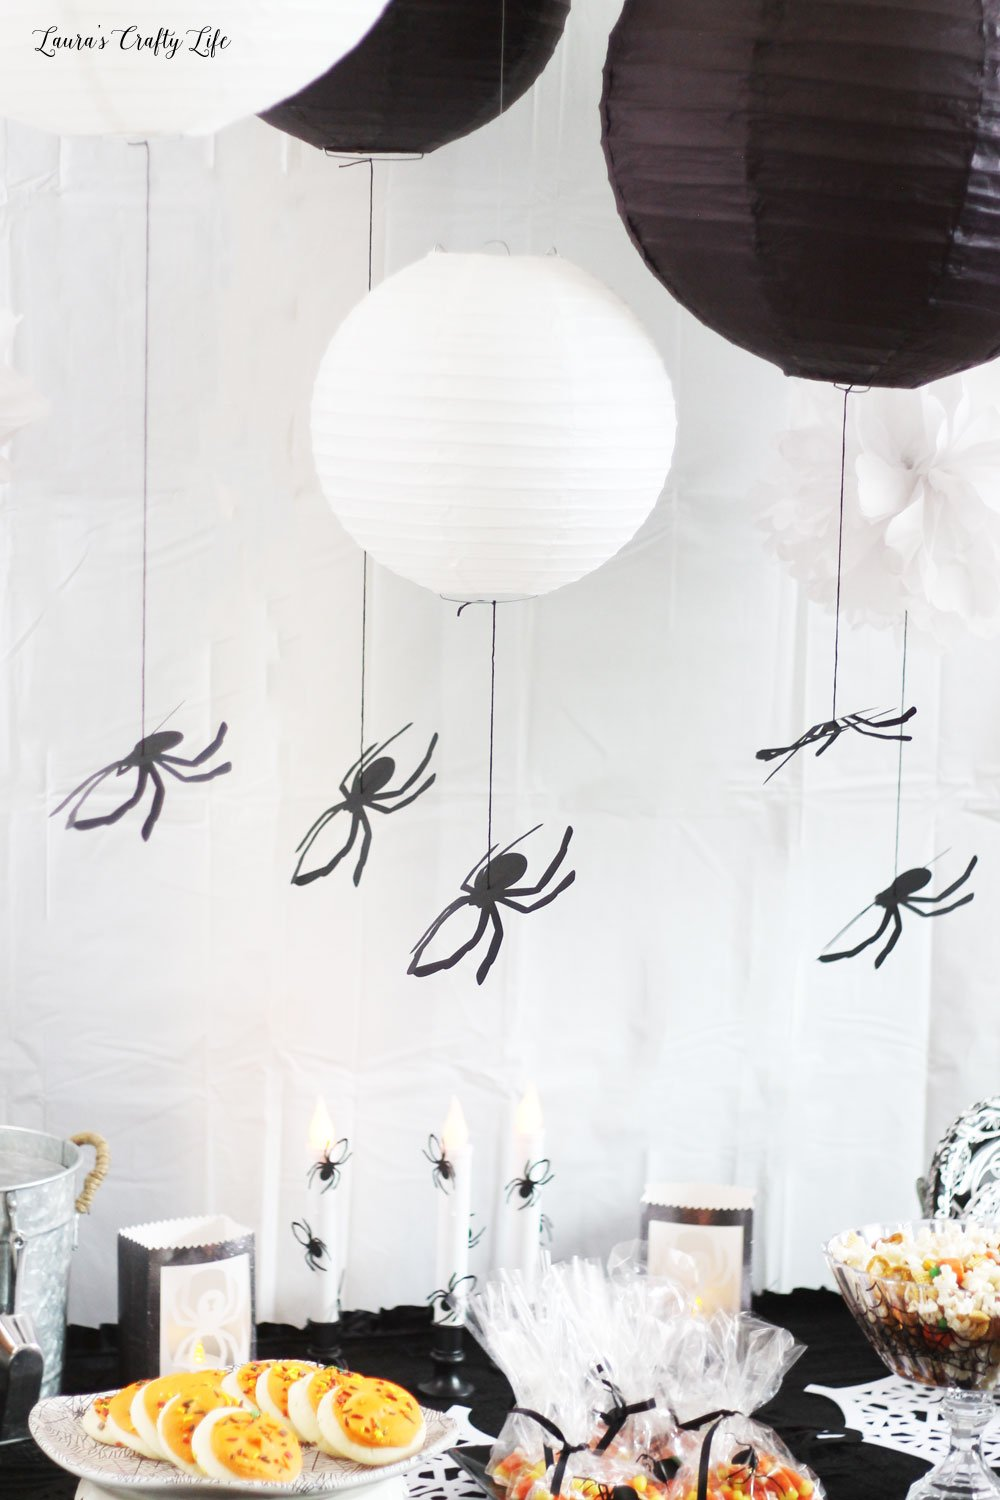 Hanging spider decor made with Cricut Maker #laurascraftylife #Halloween #spider